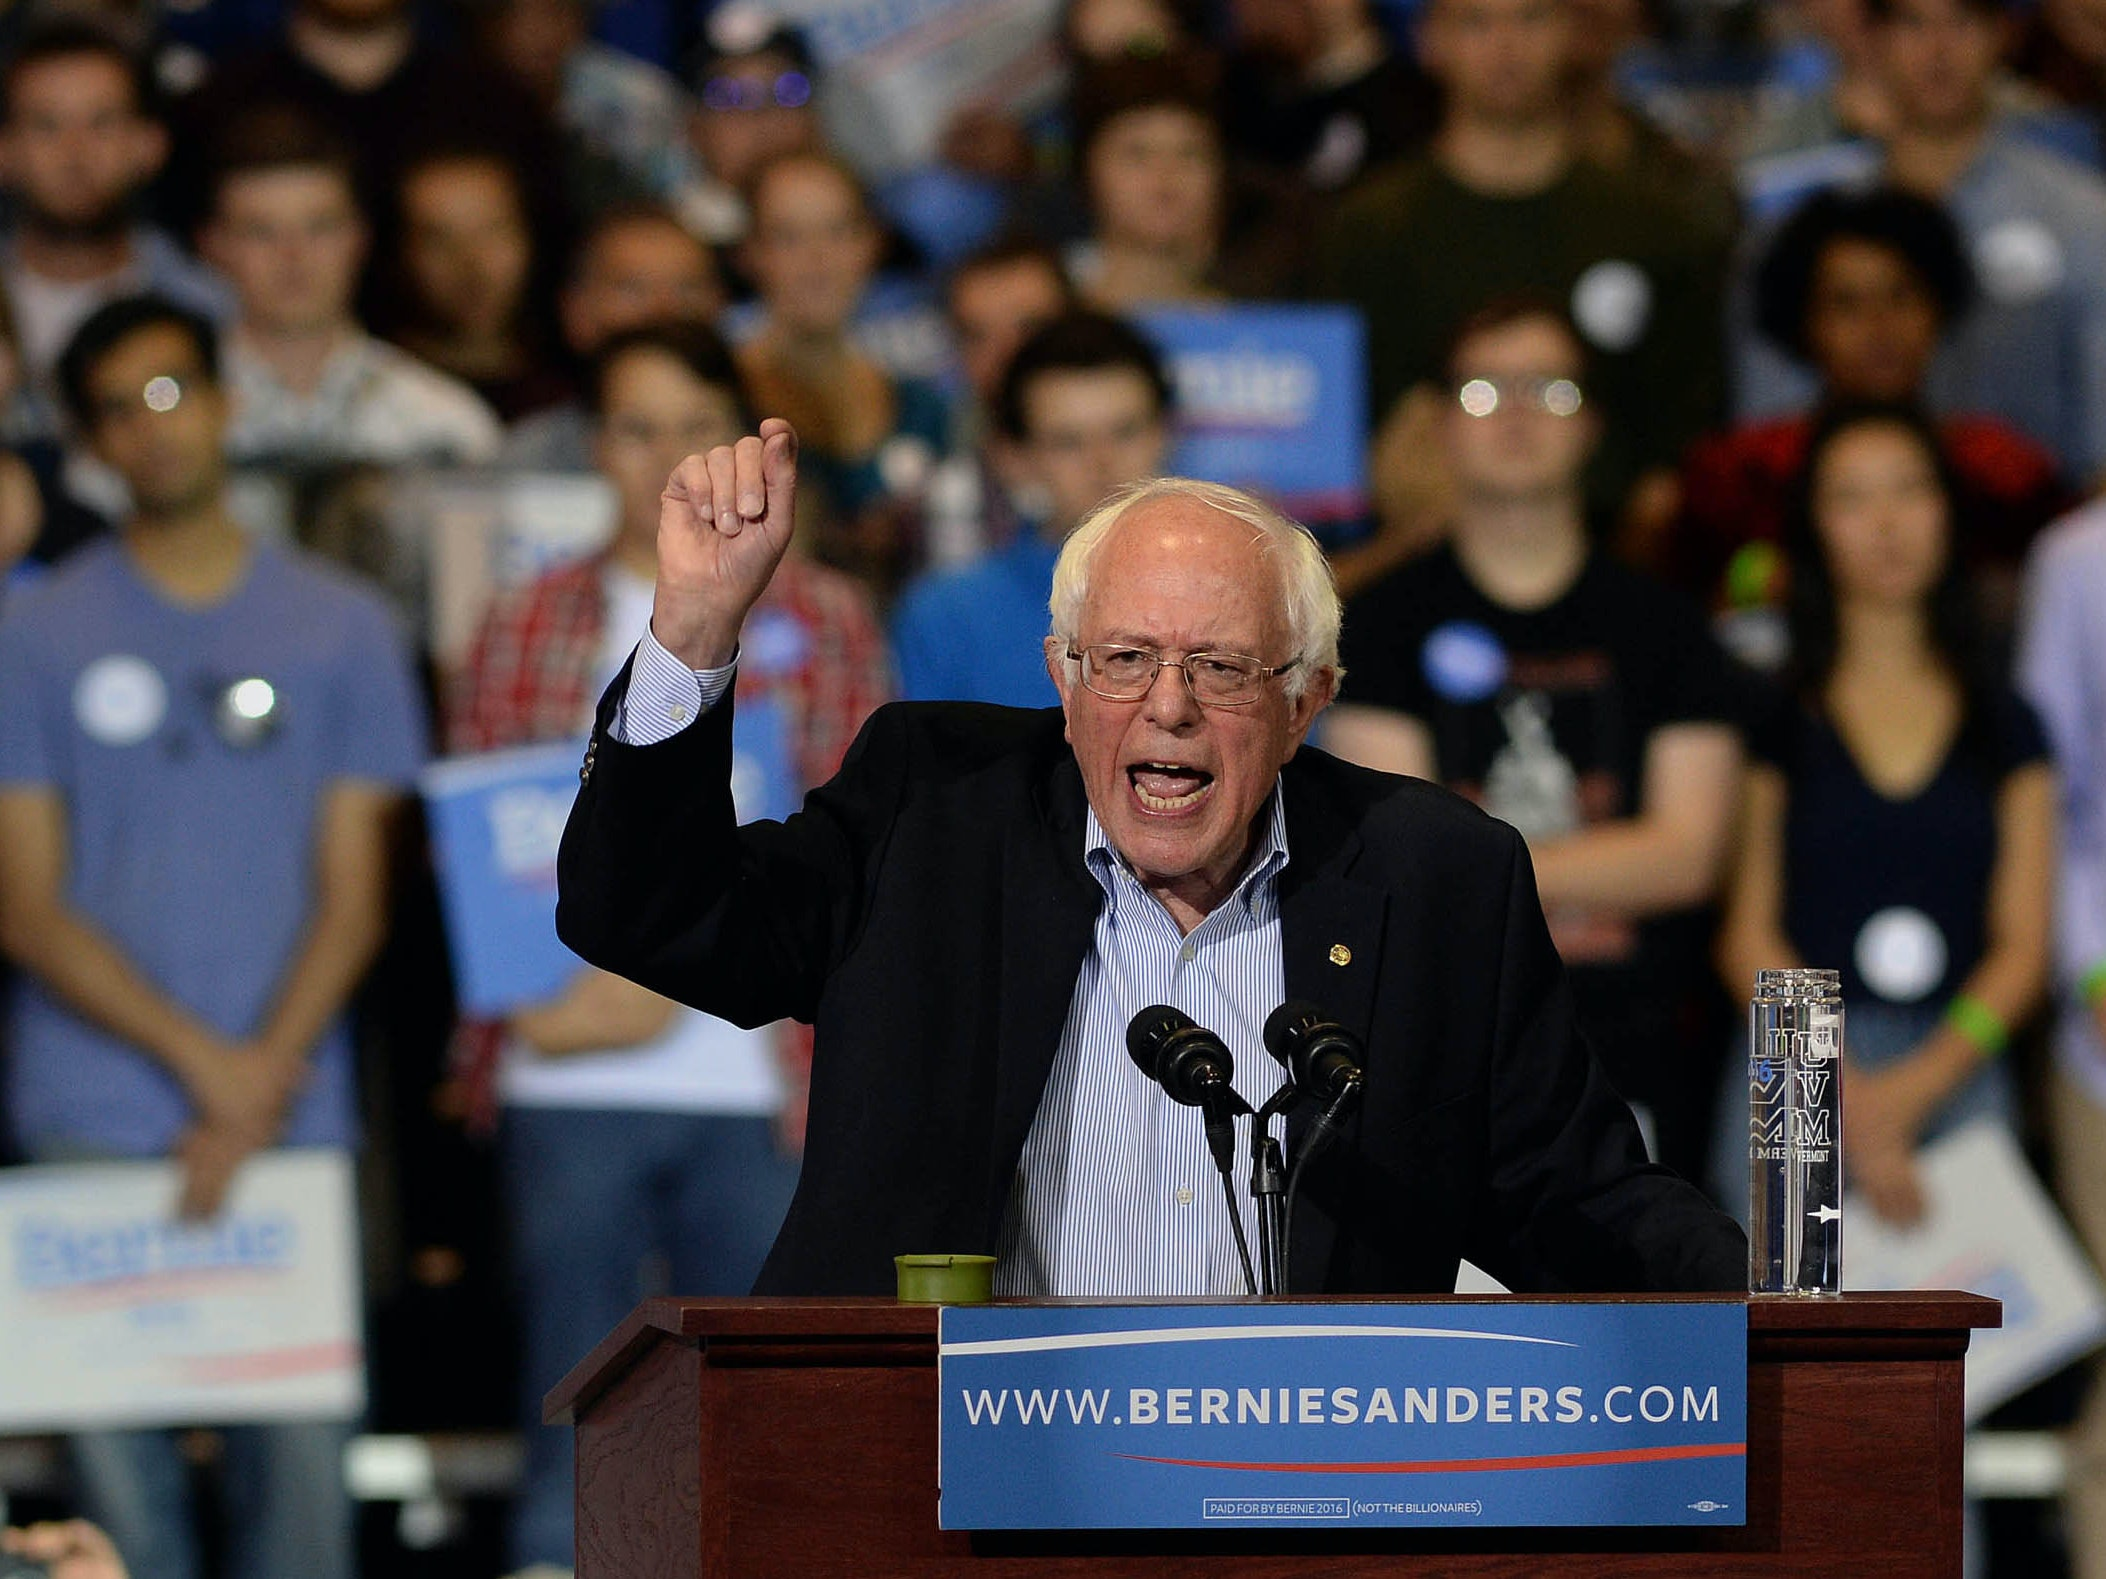 Bernie Sanders Becomes First Senator to Officially Propose Federal Marijuana Decriminalization